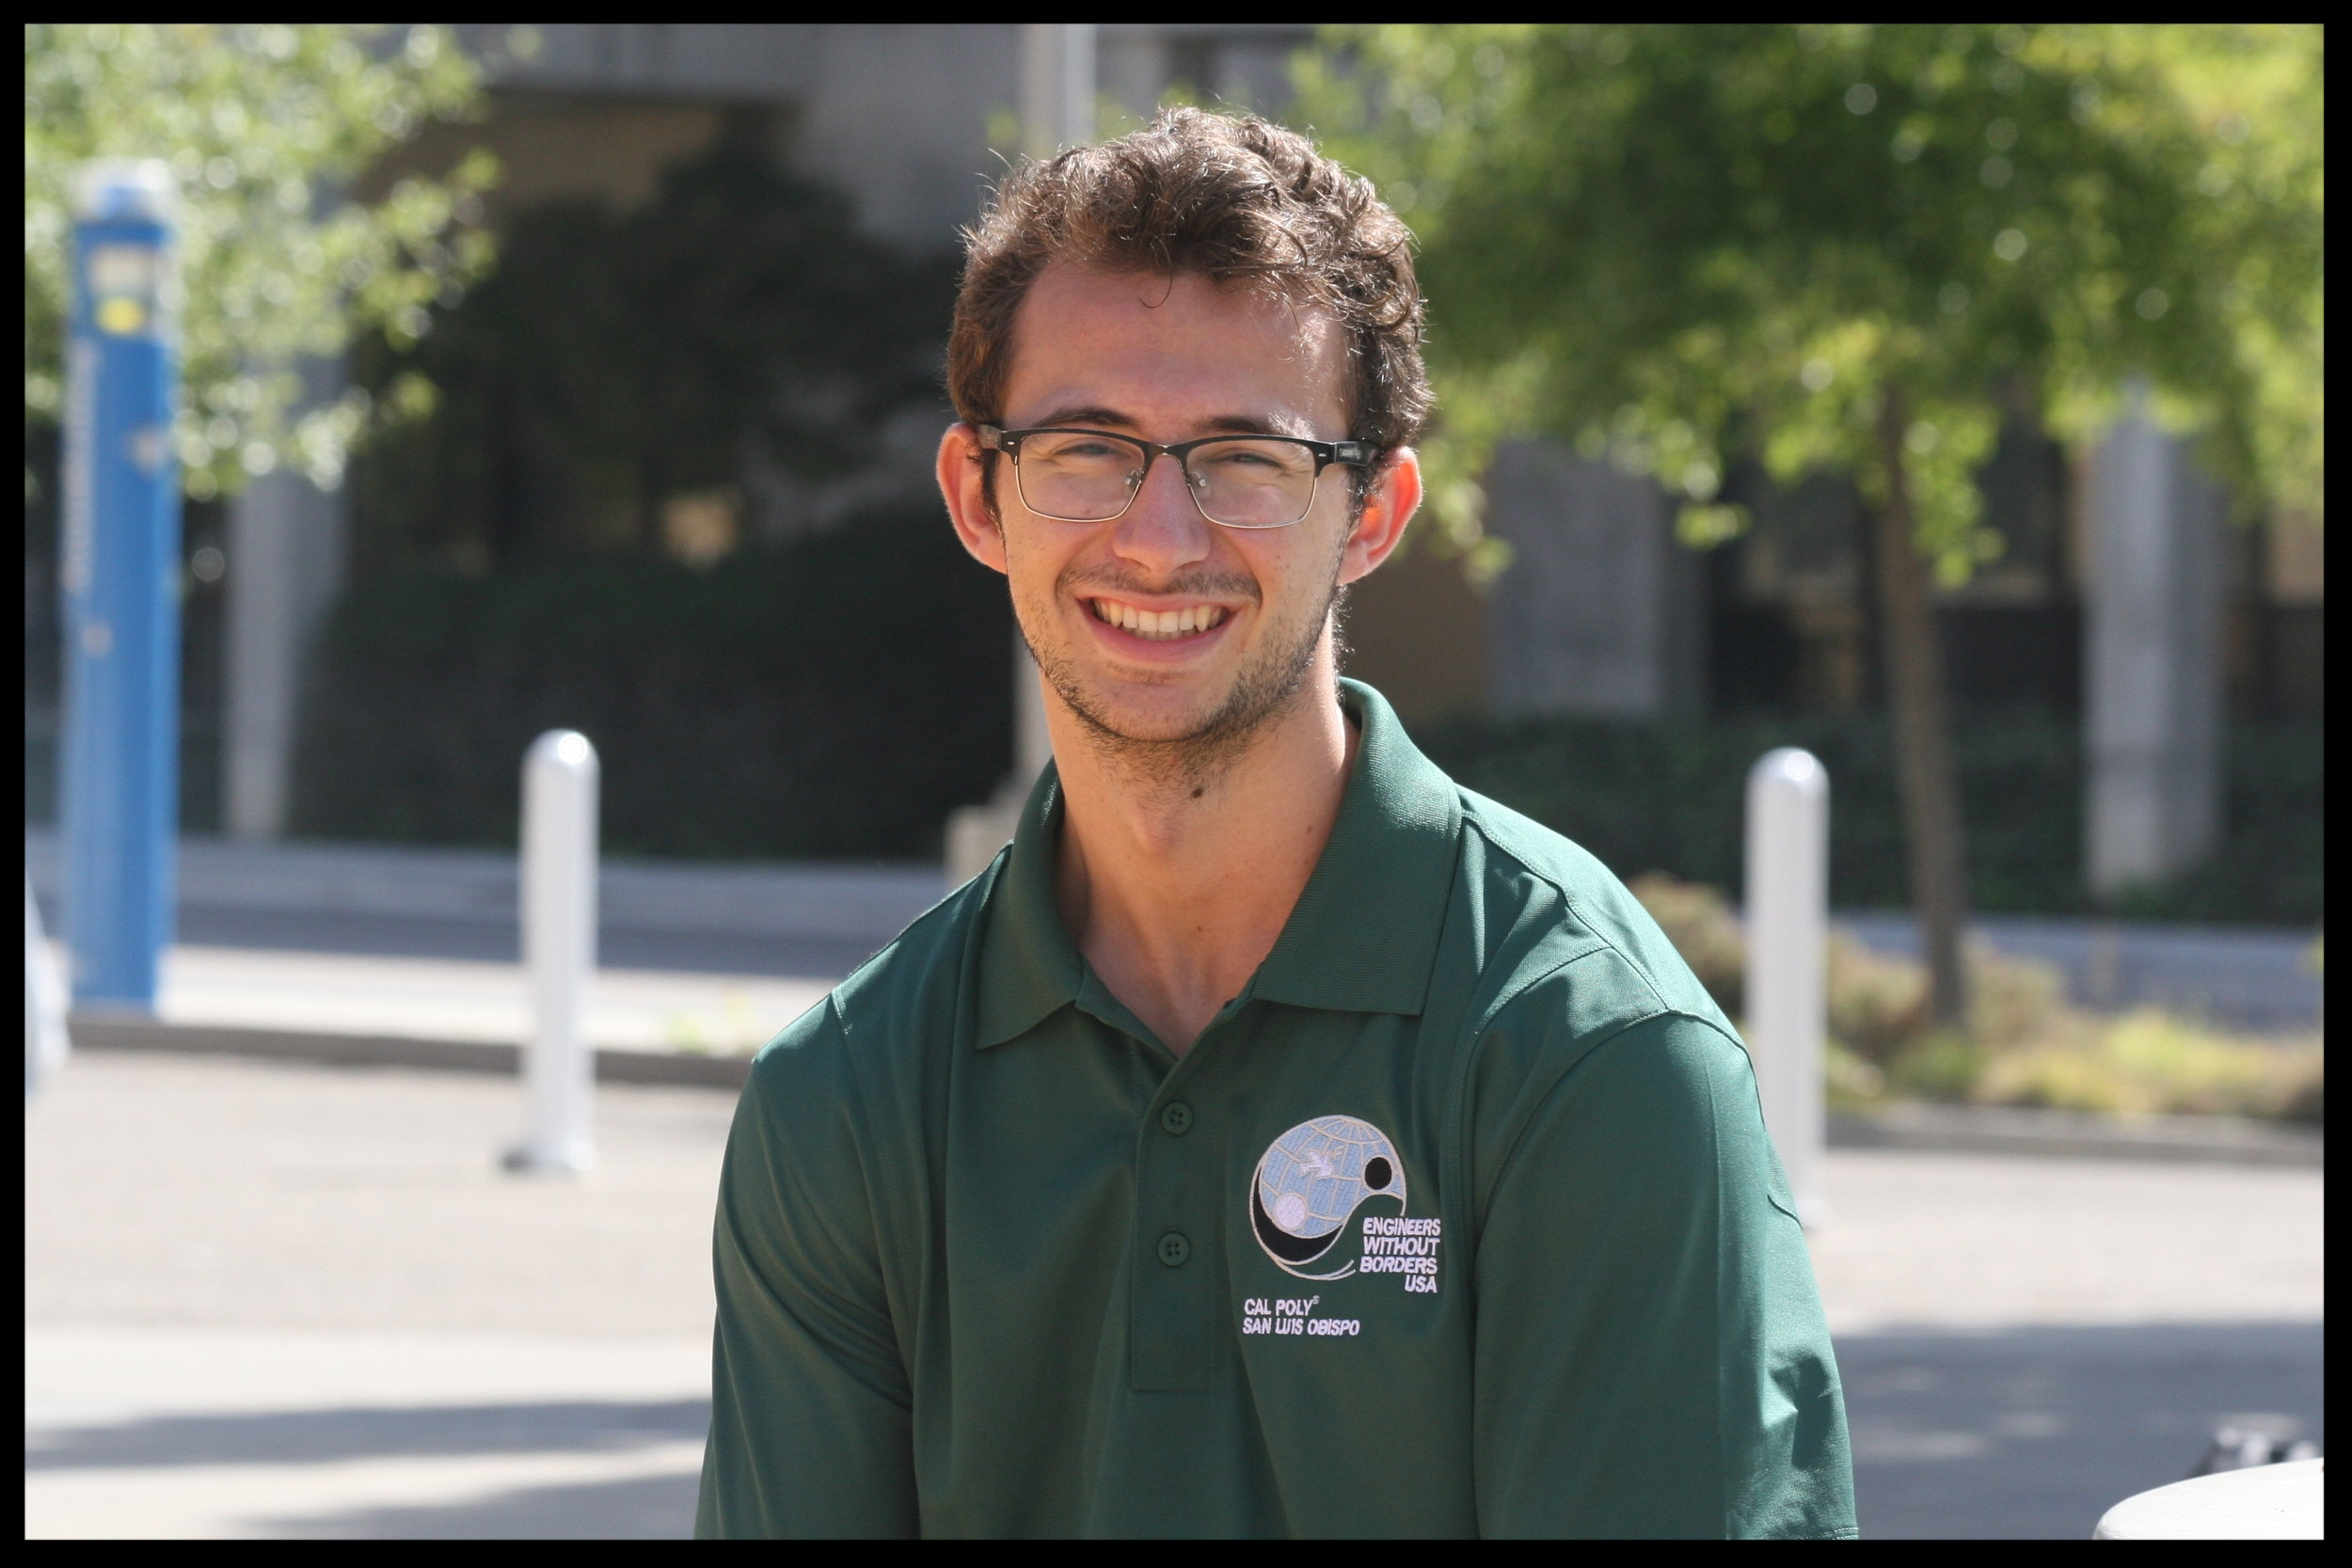 Dylan Merlo - Nicaragua Team Project Manager    Grad 2019 - Civil Engineering   Dylan is from Folsom, California. He joined EWB as a way of uniting his passion for development work with his knowledge of Civil Engineering learned at Cal Poly. Dylan's favorite EWB memory is visiting La Rinconada and meeting the community members for the first time. Outside of EWB, Dylan enjoys playing soccer, hiking, and camping.